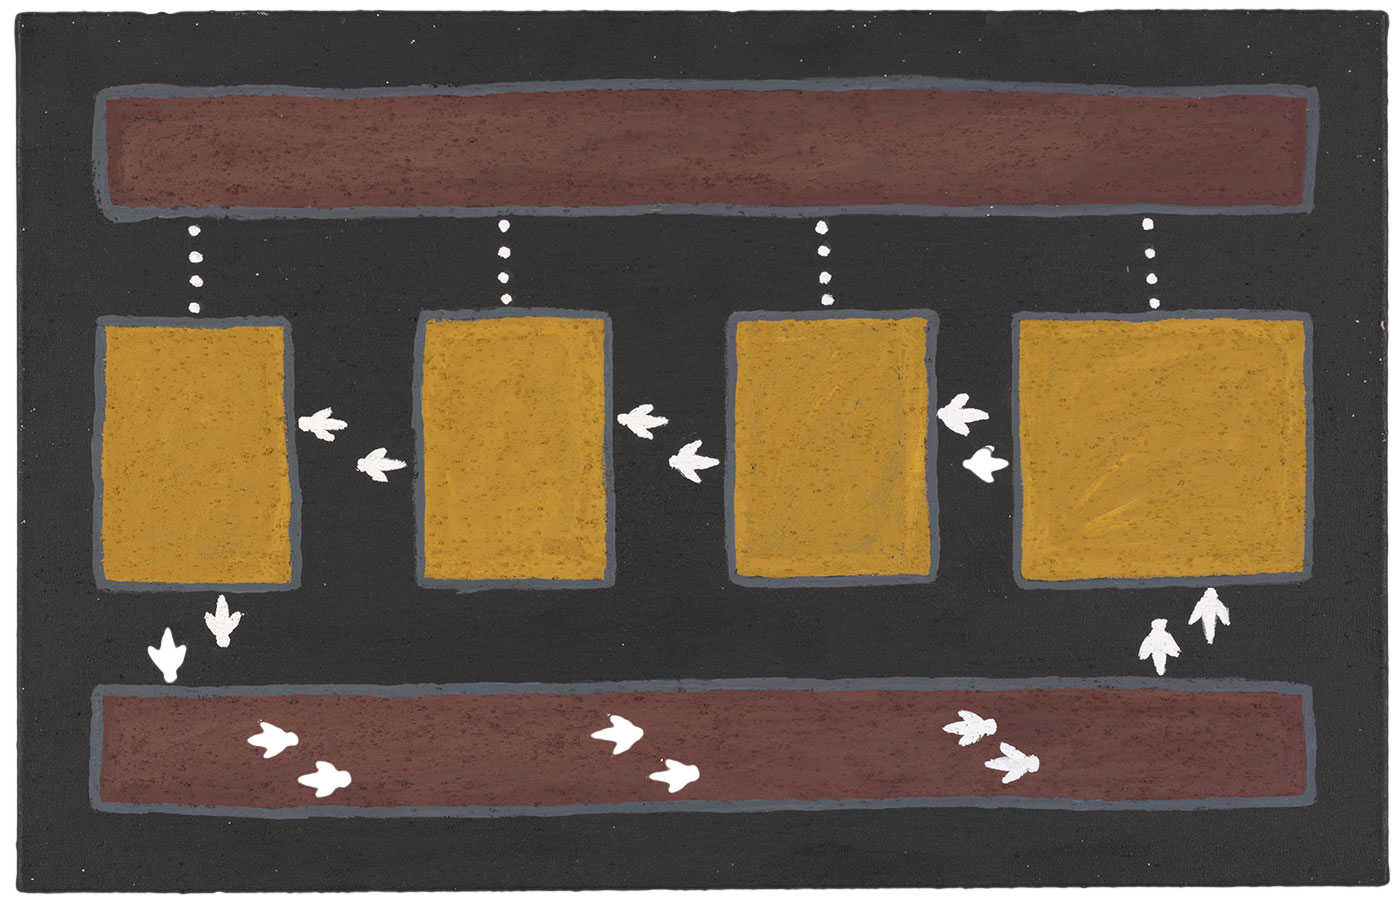 A painting on a black background featuring four yellow ochre rectangles in the centre of the canvas and two long red ochre rectangles above and below. White animal tracks and lines of dots join the rectangular shapes.